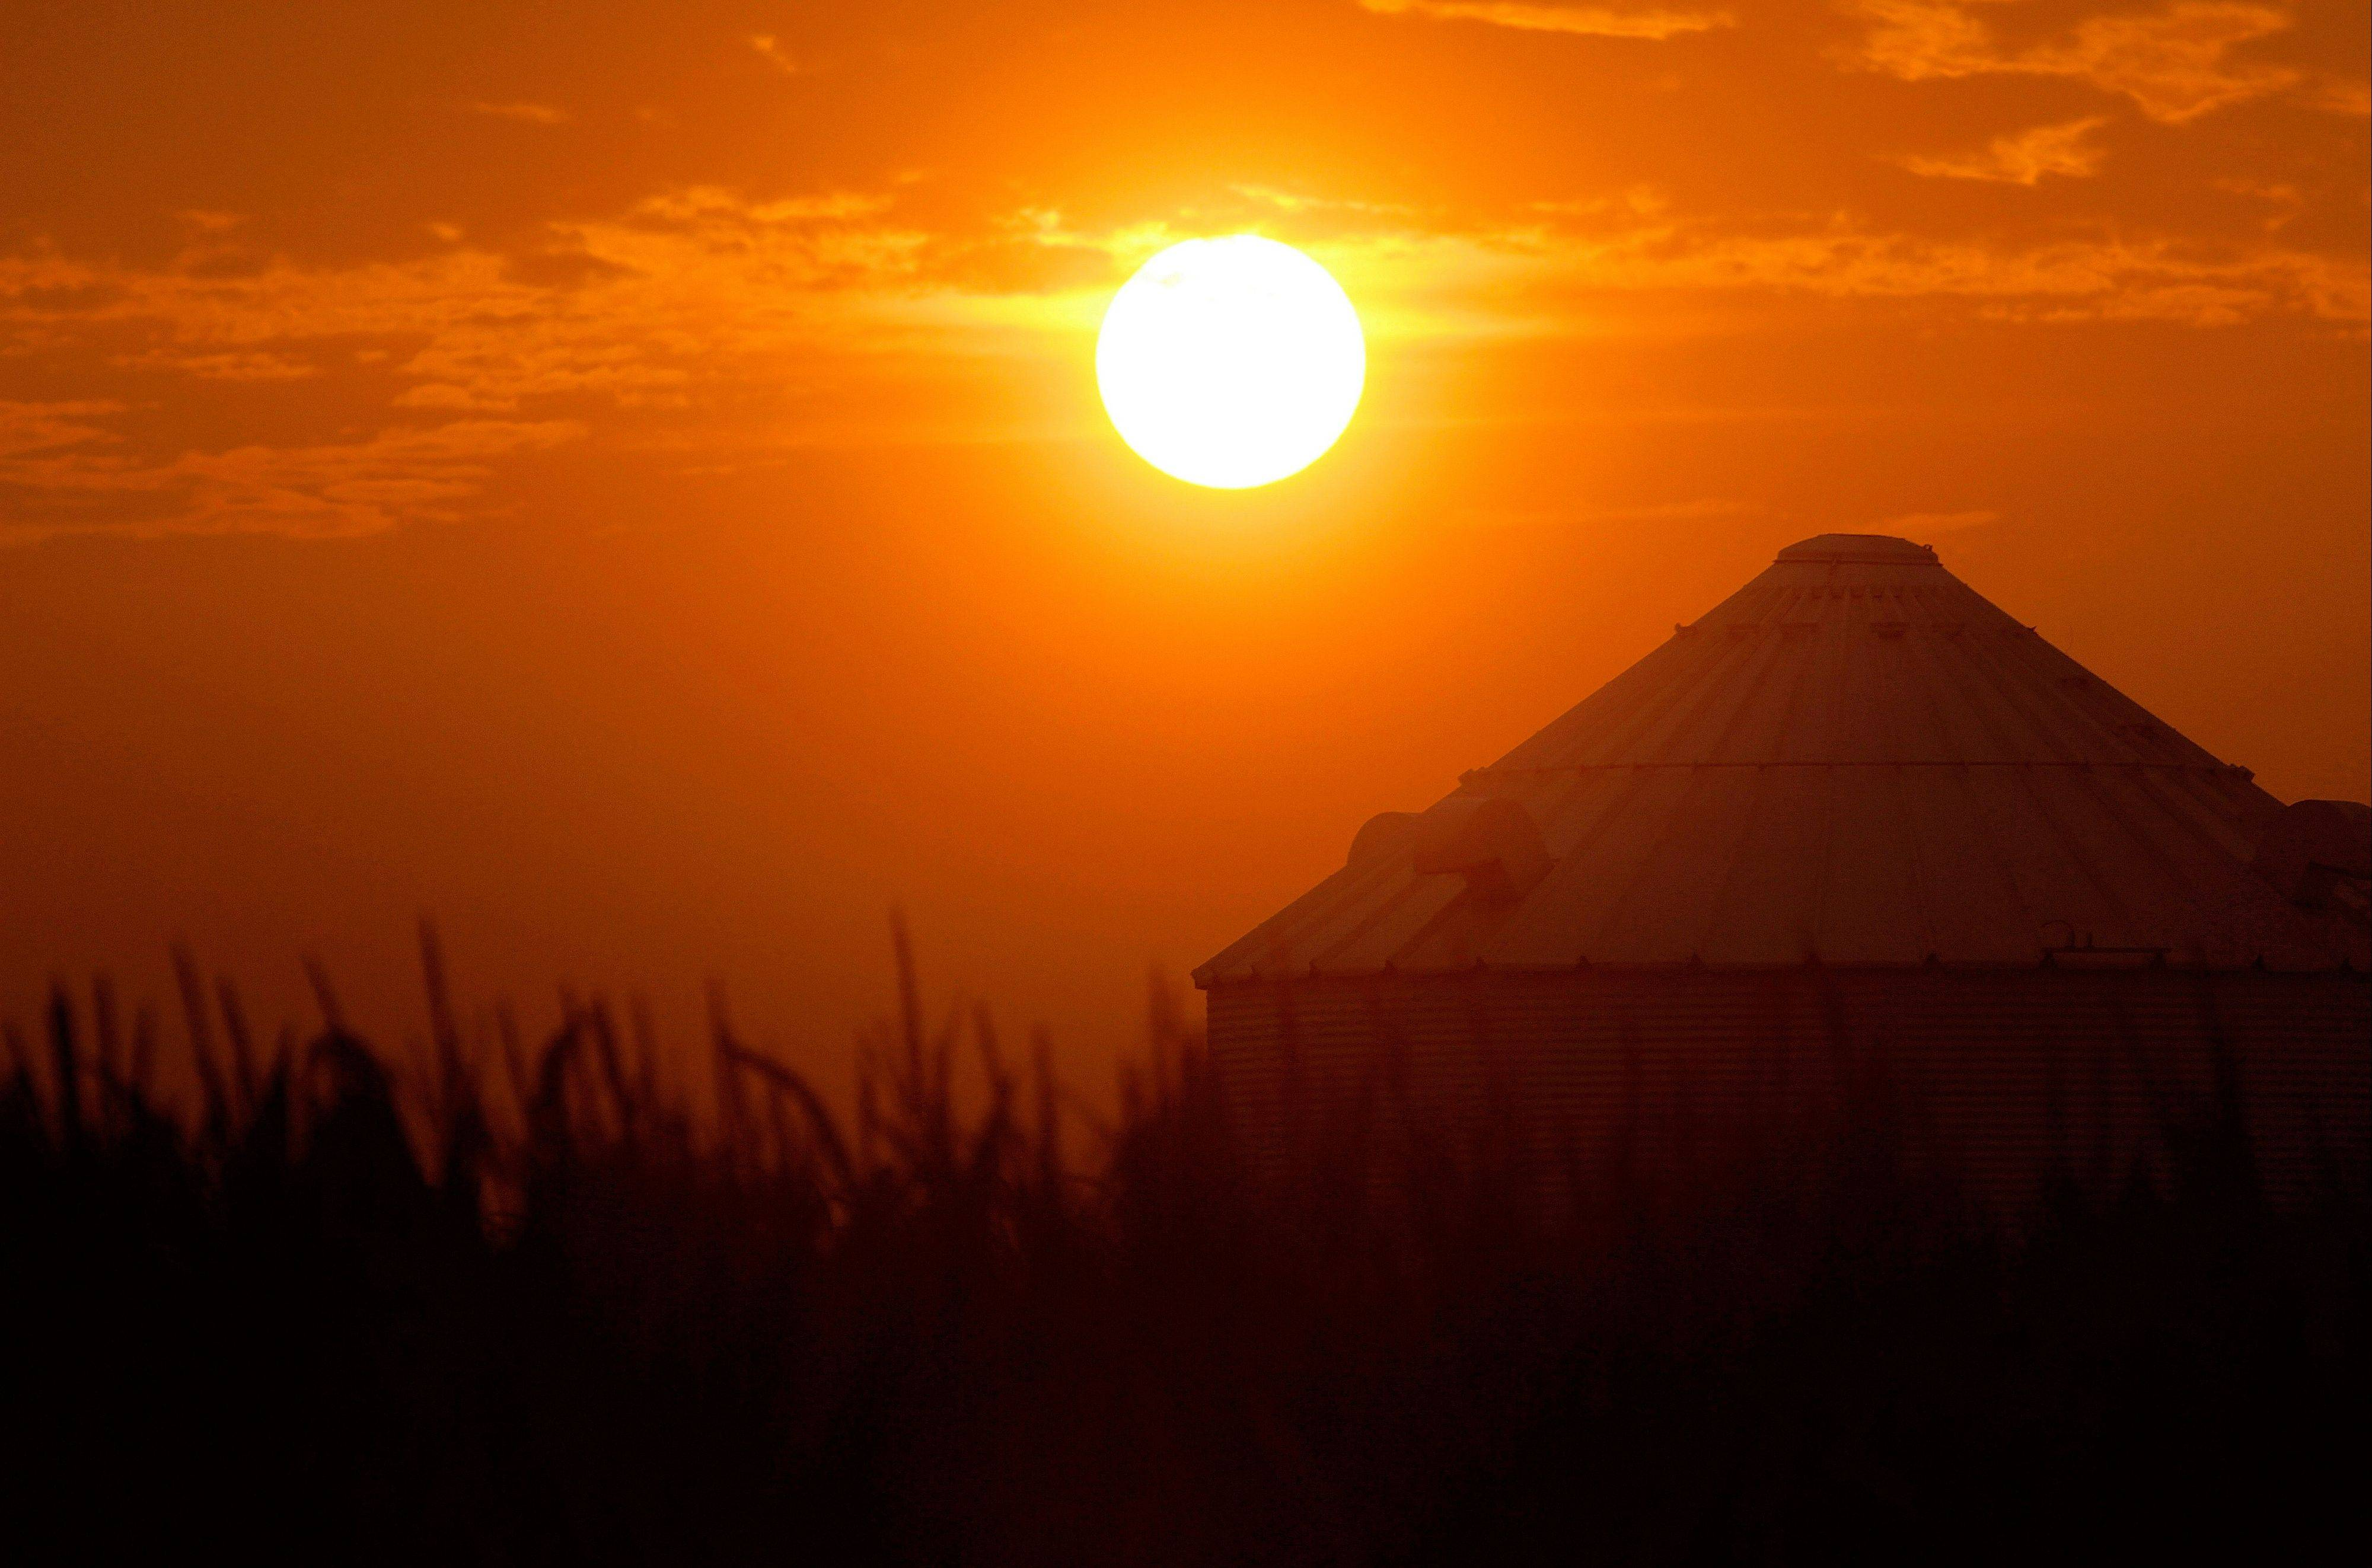 The sun rises over grain bins and a drought struggling corn crop Saturday in Ashland, Ill. The latest U.S. Drought Monitor survey shows an increase in extreme drought conditions in four Plains states. A new study finds that the extreme heat has a direct correlation to climate change.